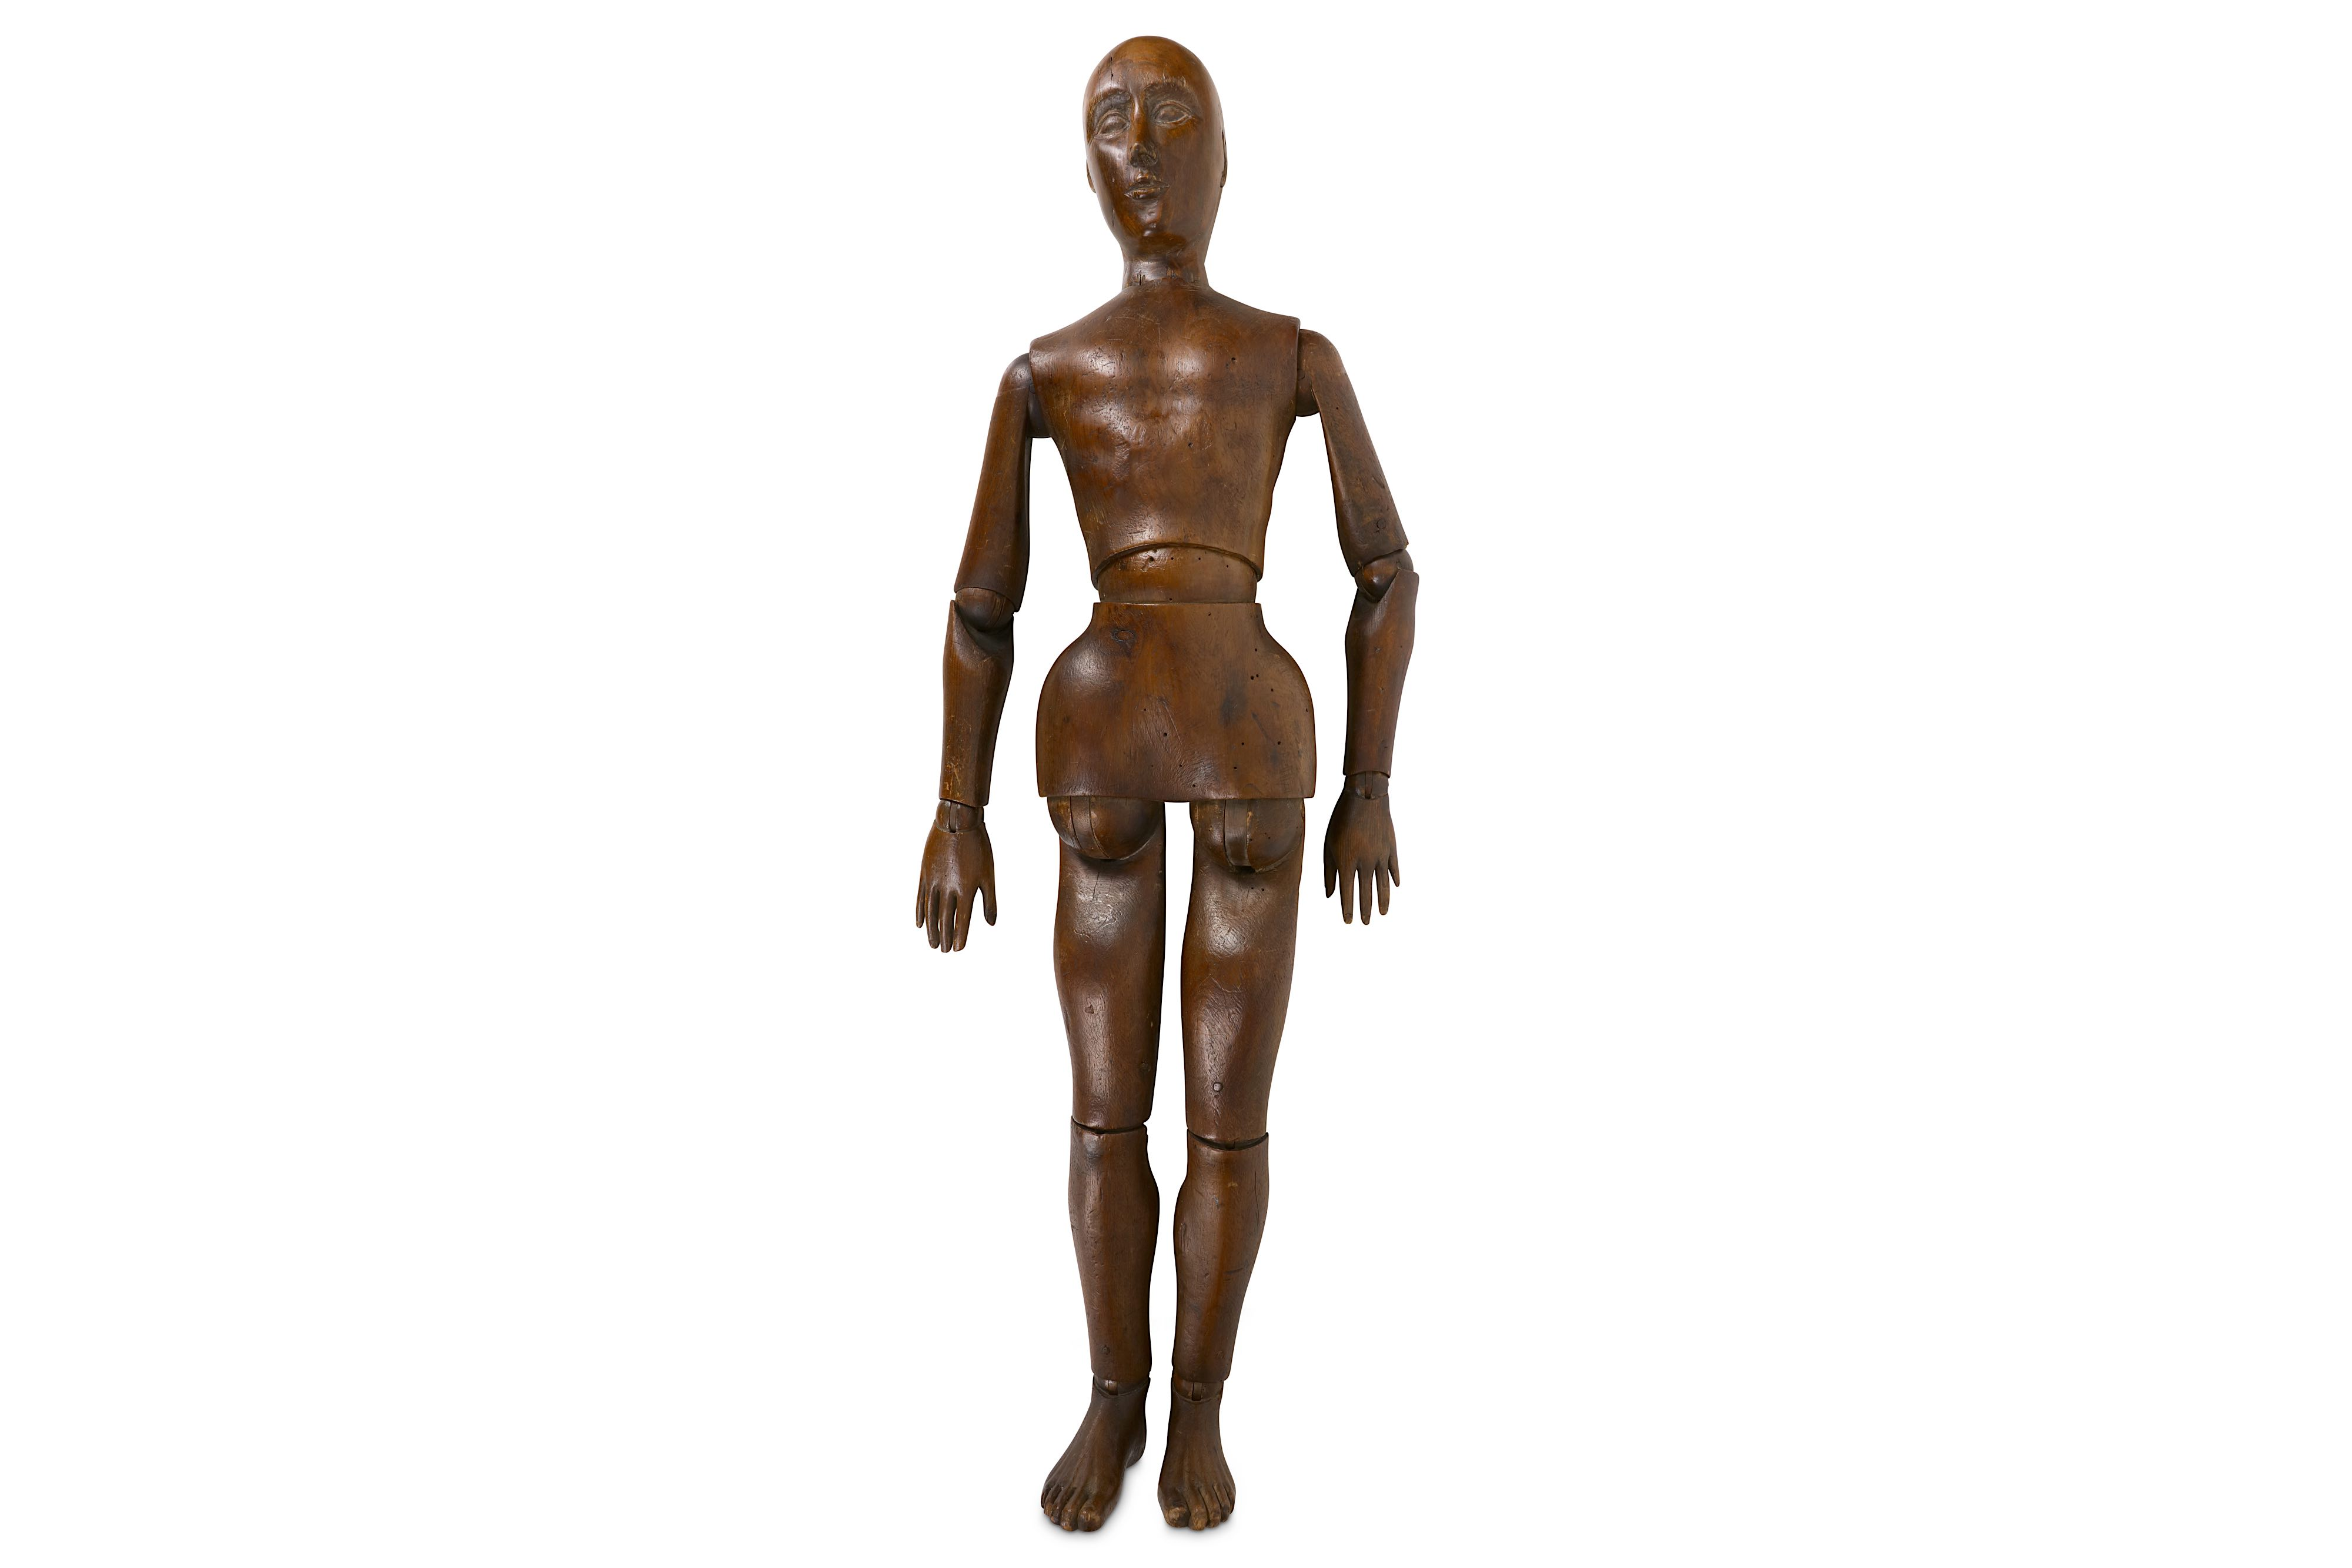 AN EARLY 20TH CENTURY CARVED AND STAINED WOOD LAY FIGURE OR ARTIST'S MANNEQUIN - Image 2 of 4